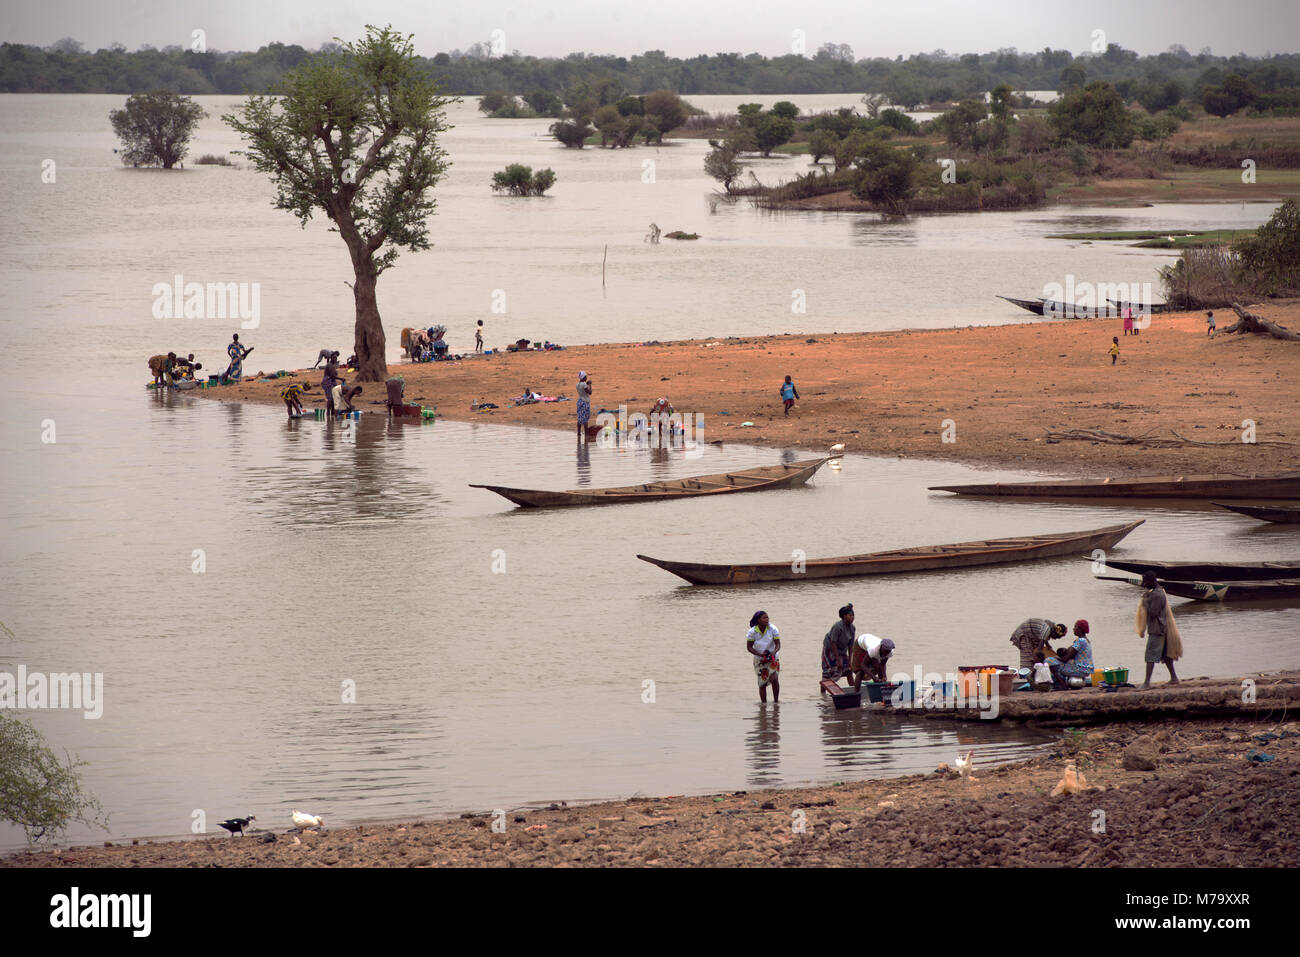 People from a small riverine community washing their clothes and utensils in the River Bani, Mopti Region, Mali, - Stock Image